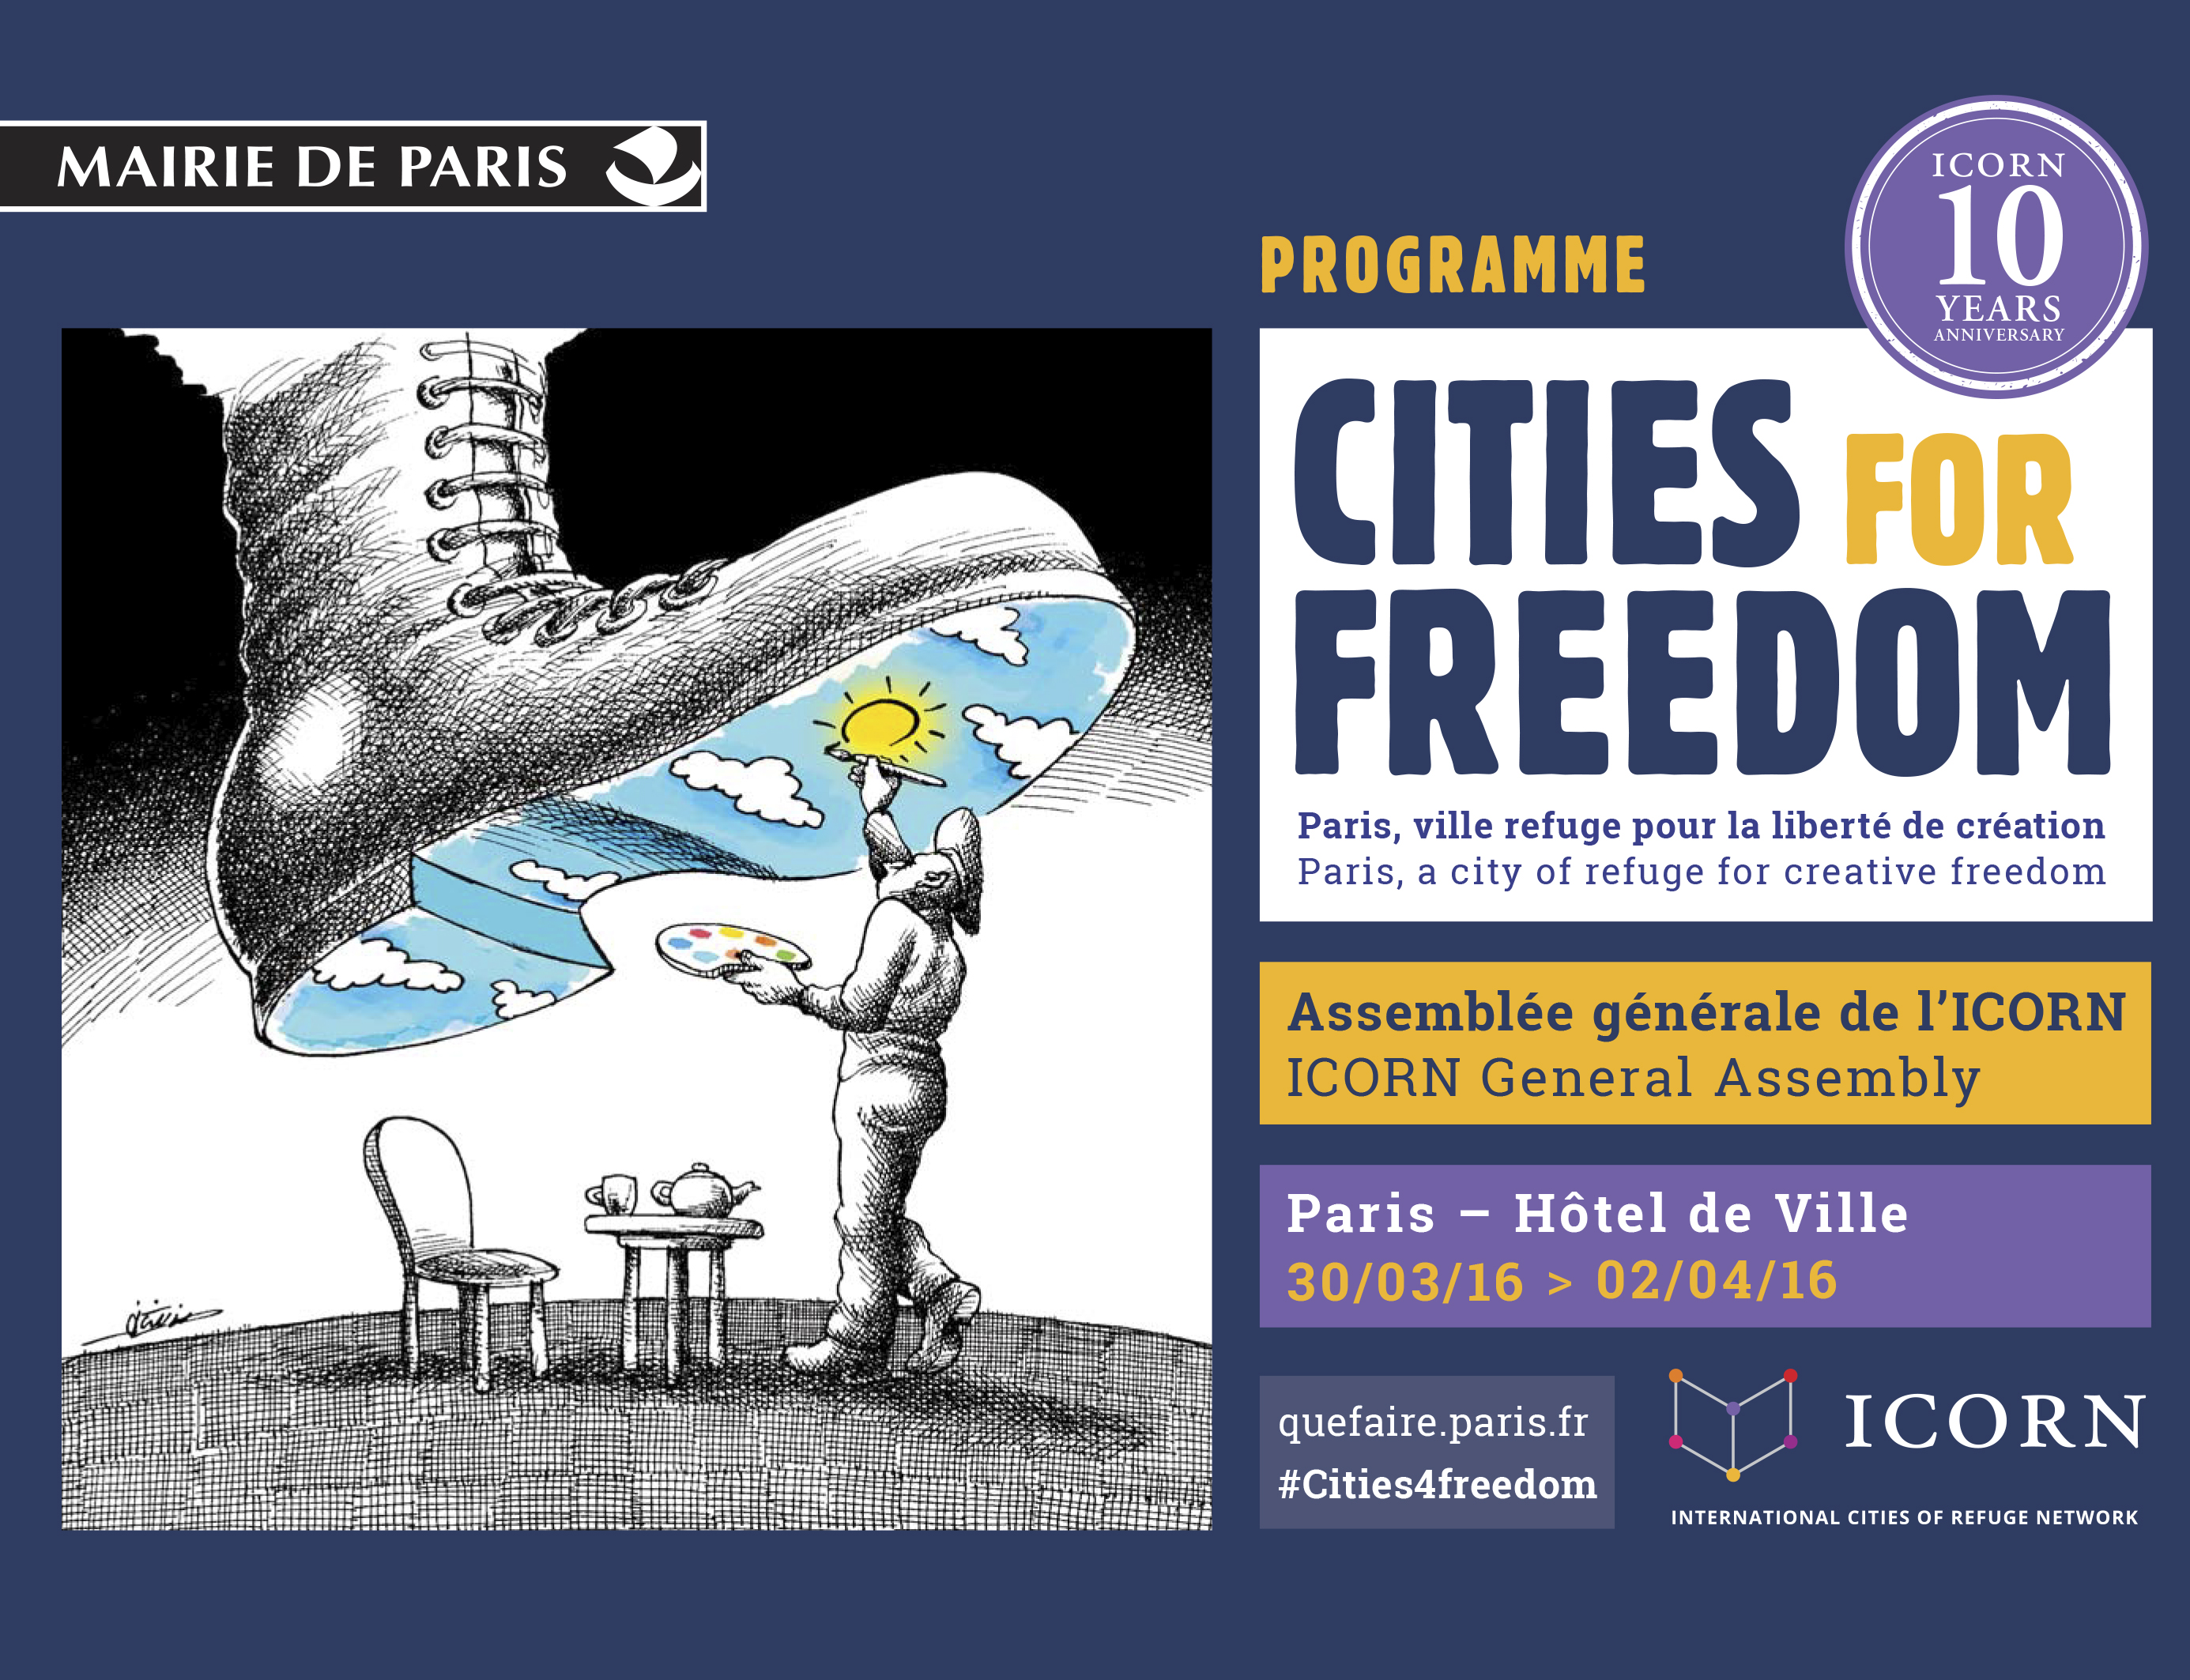 Cities for Freedom. Booklet for ICORN General Assembly and 10 years anniversary in Paris 2016. Photo.